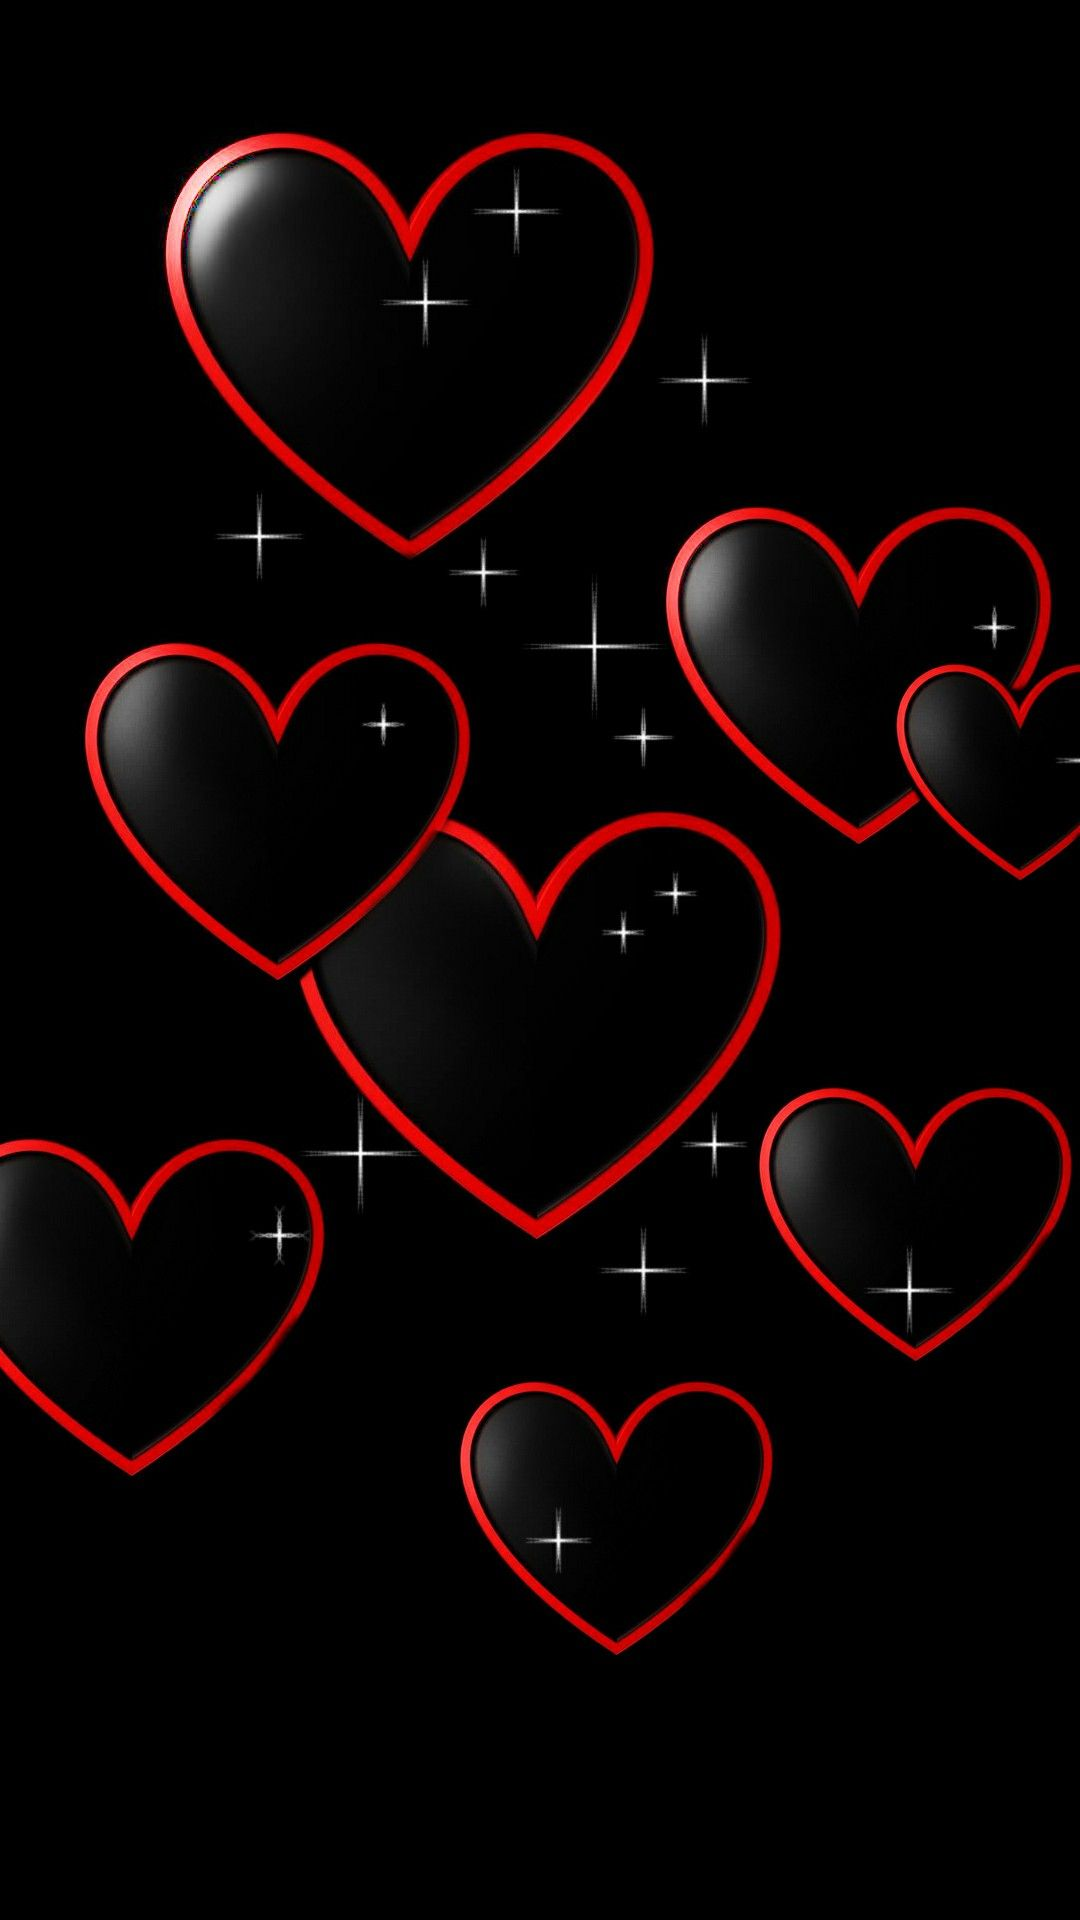 Red W Blk Hearts Heart Wallpaper Romantic Wallpaper Valentines Wallpaper